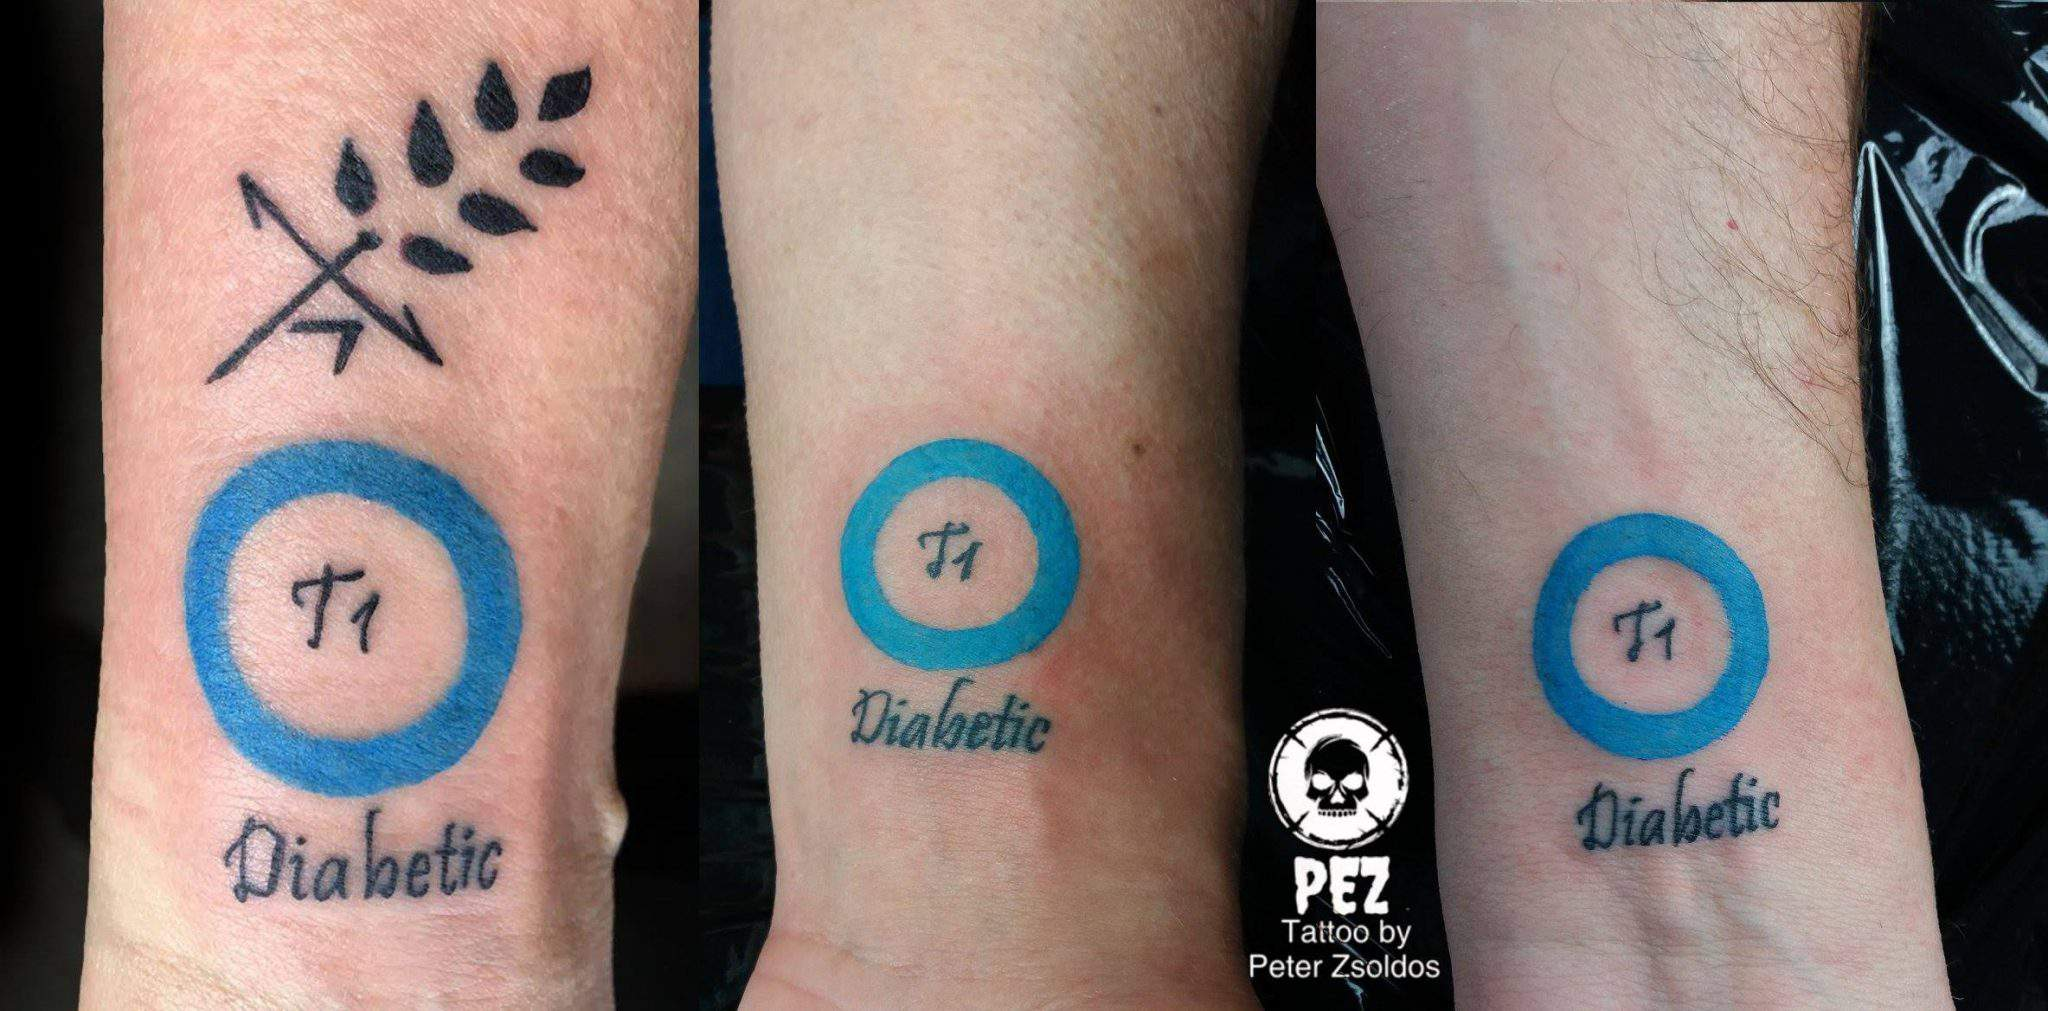 A Creative Hungarian Diabetes Tattoo Revolutionising